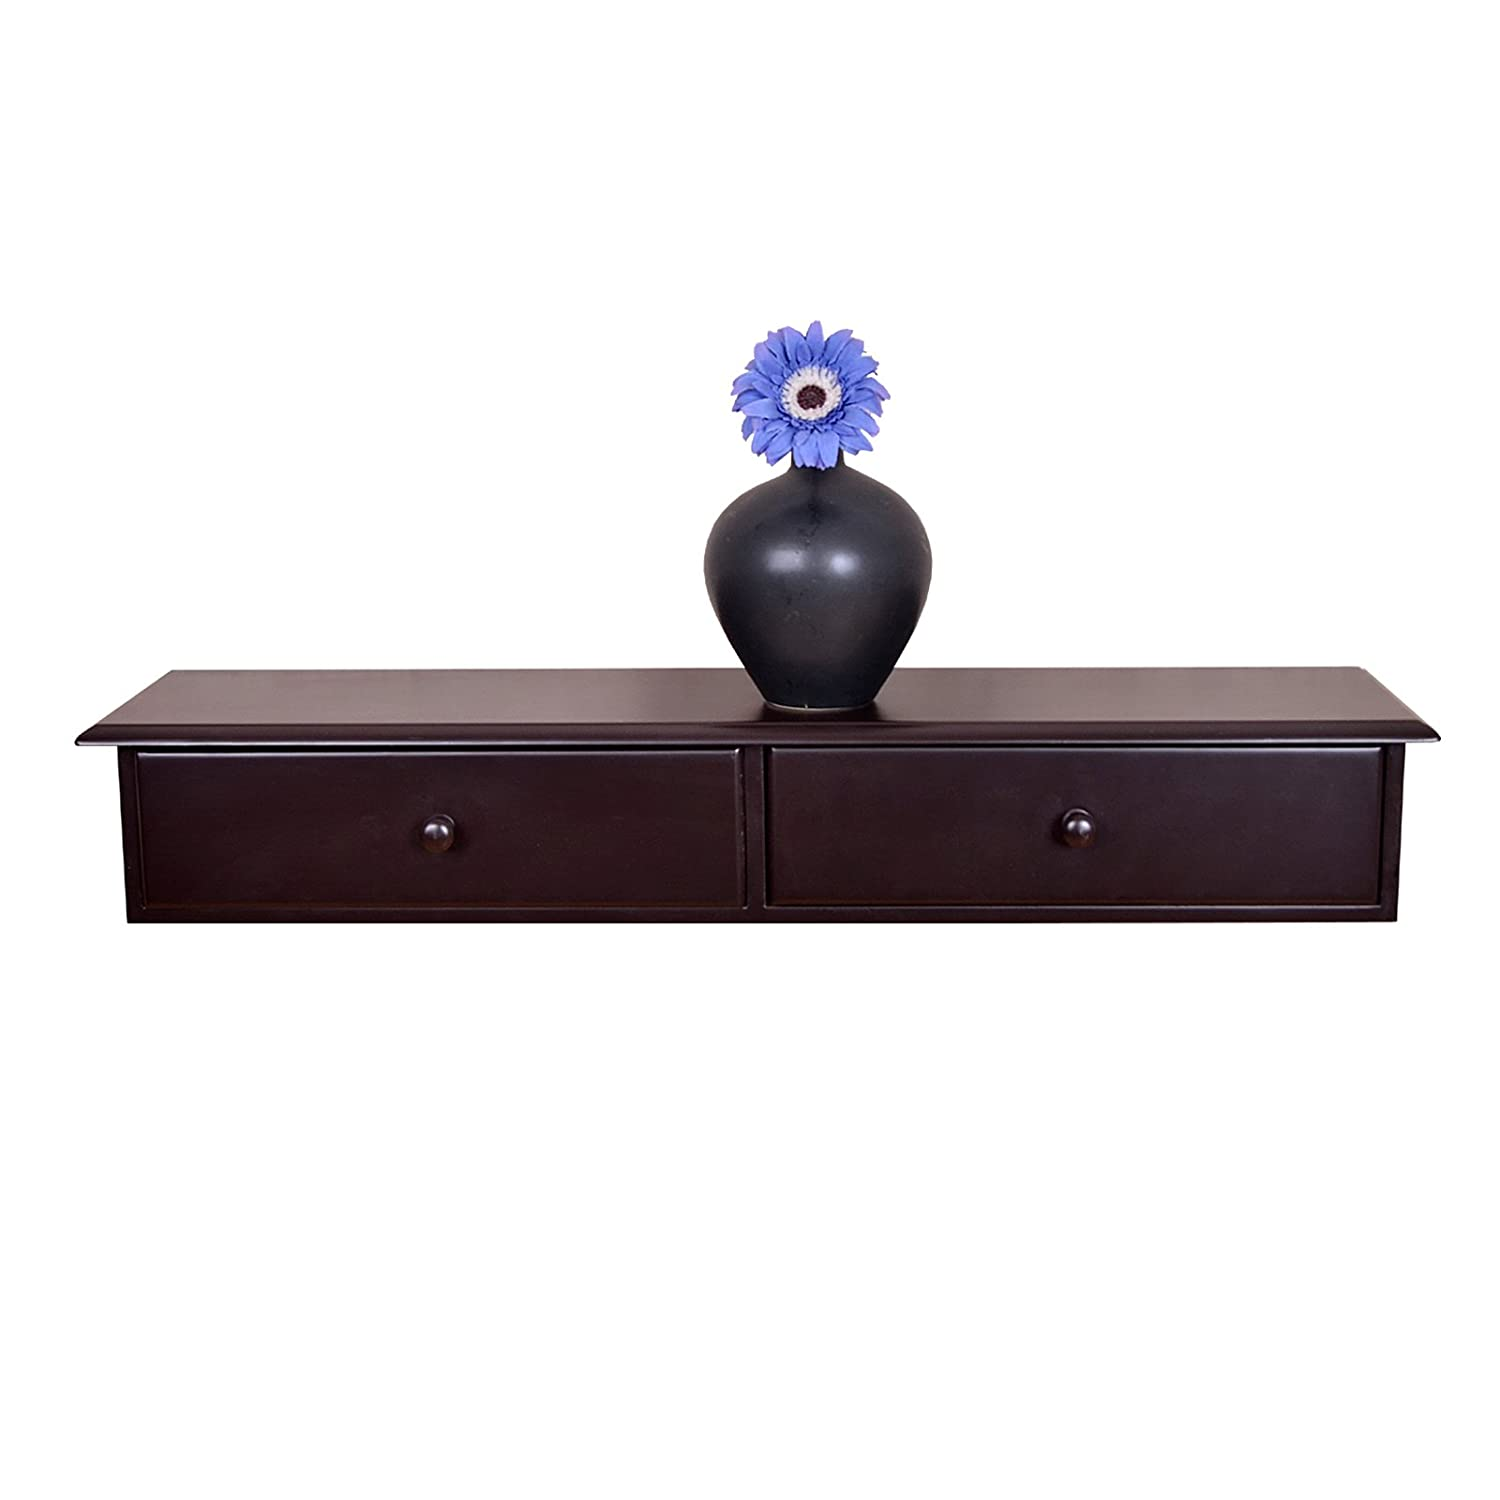 Floating Shelf With Drawer   Buyeru0027s Guide